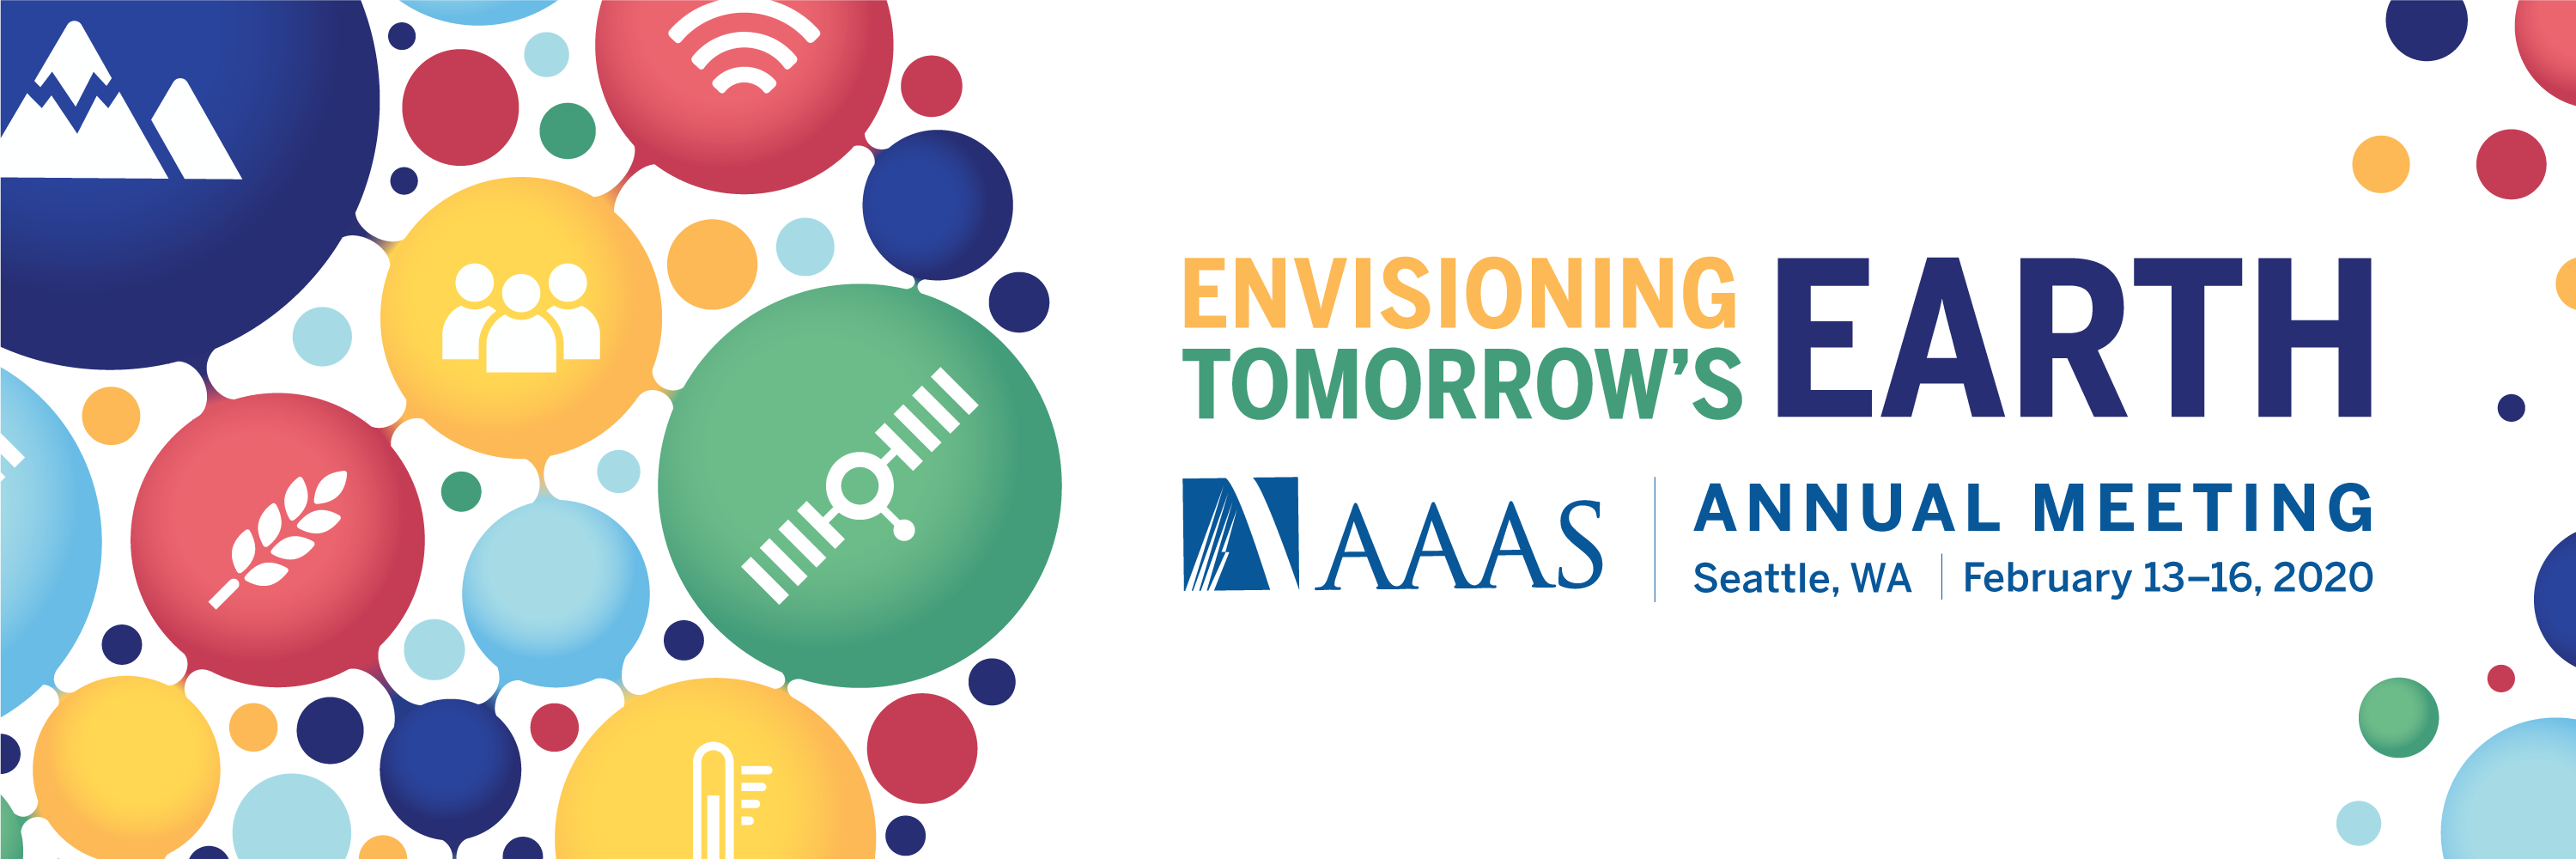 2020 AAAS Annual Meeting